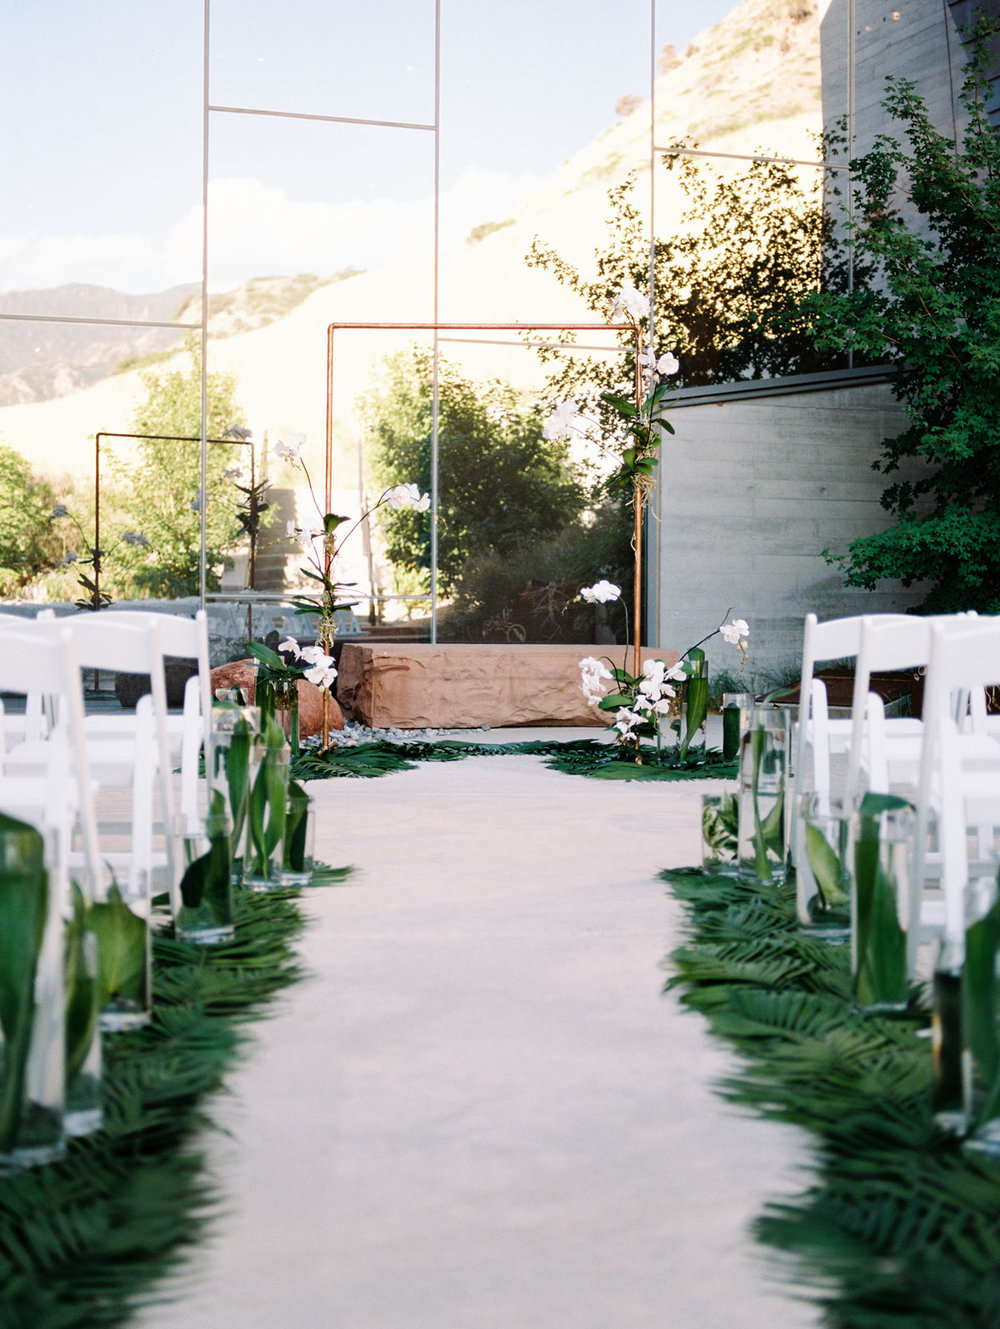 Wedding Isle Greenery Idea Copper and Orchid Florals